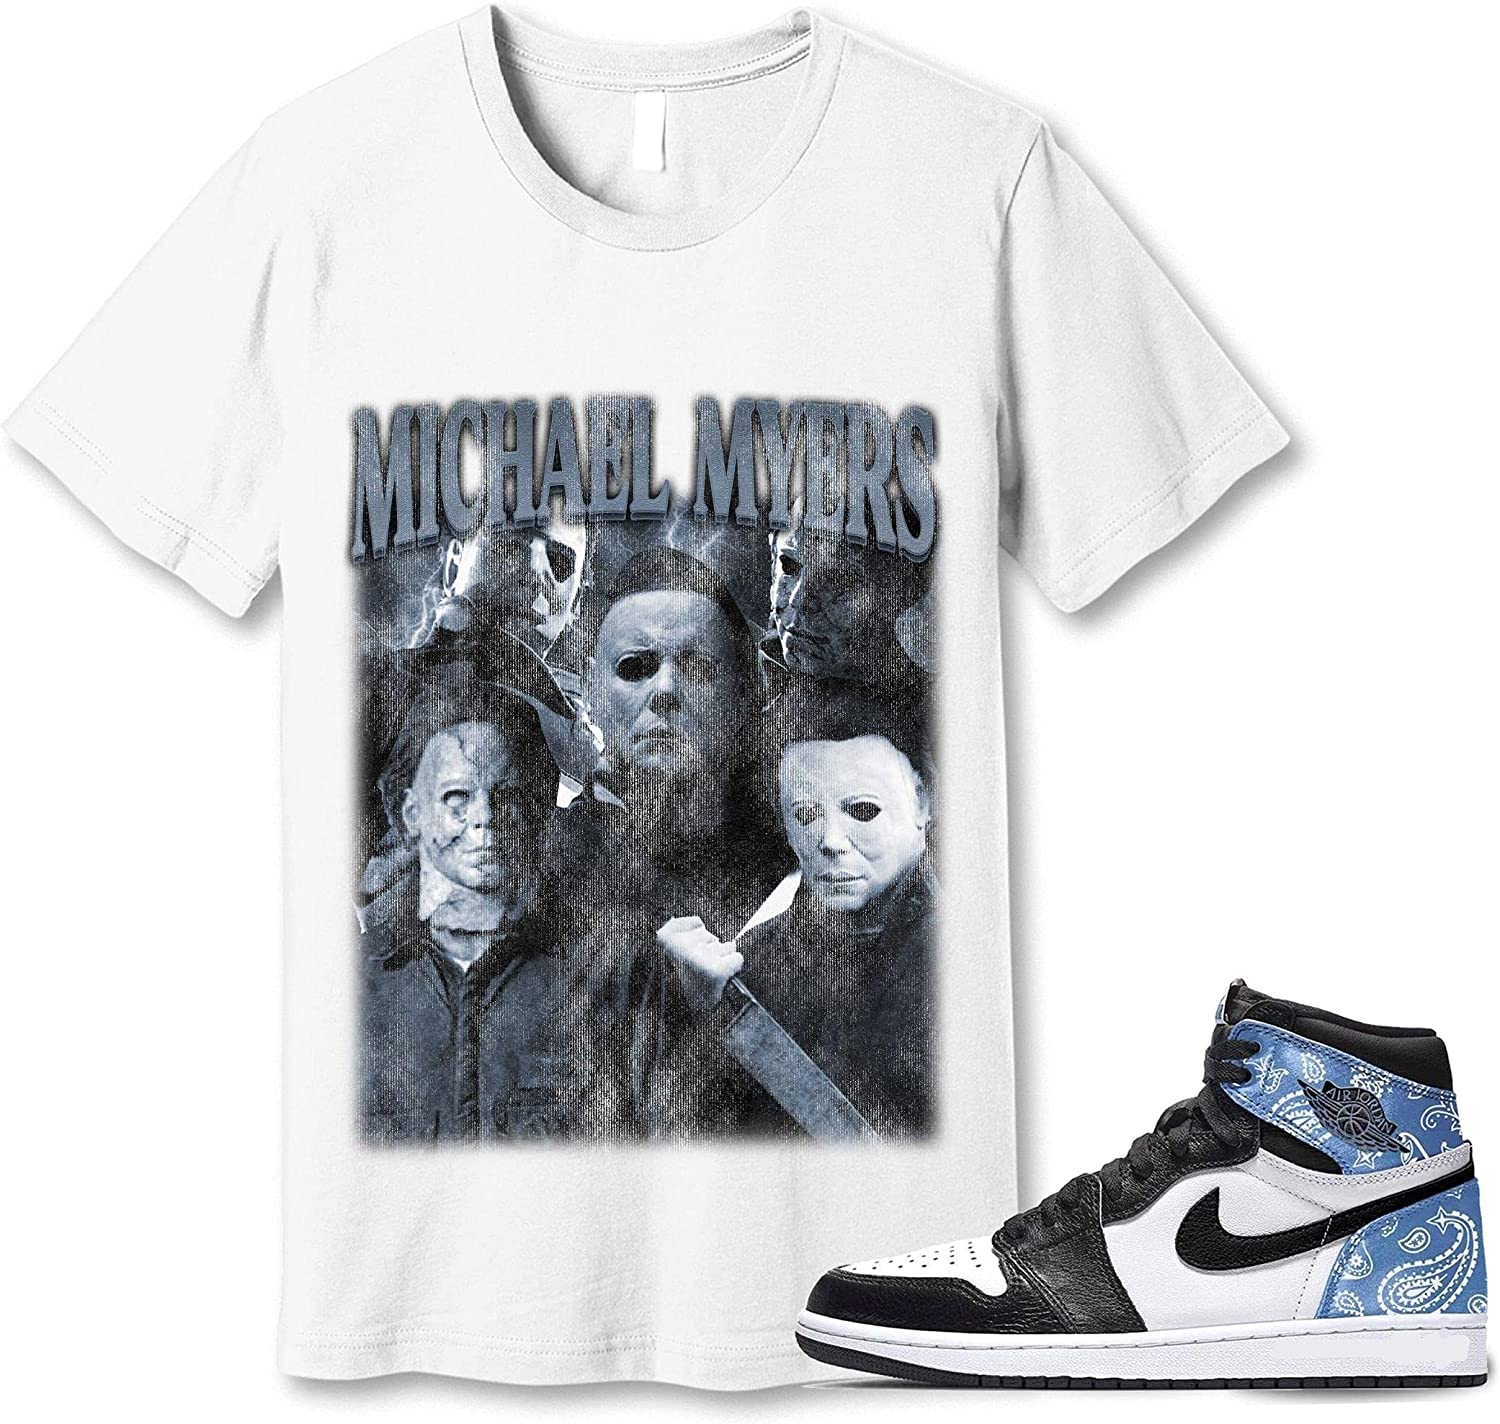 #Michael #Myer OFFicial store T-Shirt Manufacturer direct delivery to Match Jordan Paisley 1 Sneaker G Snkrs